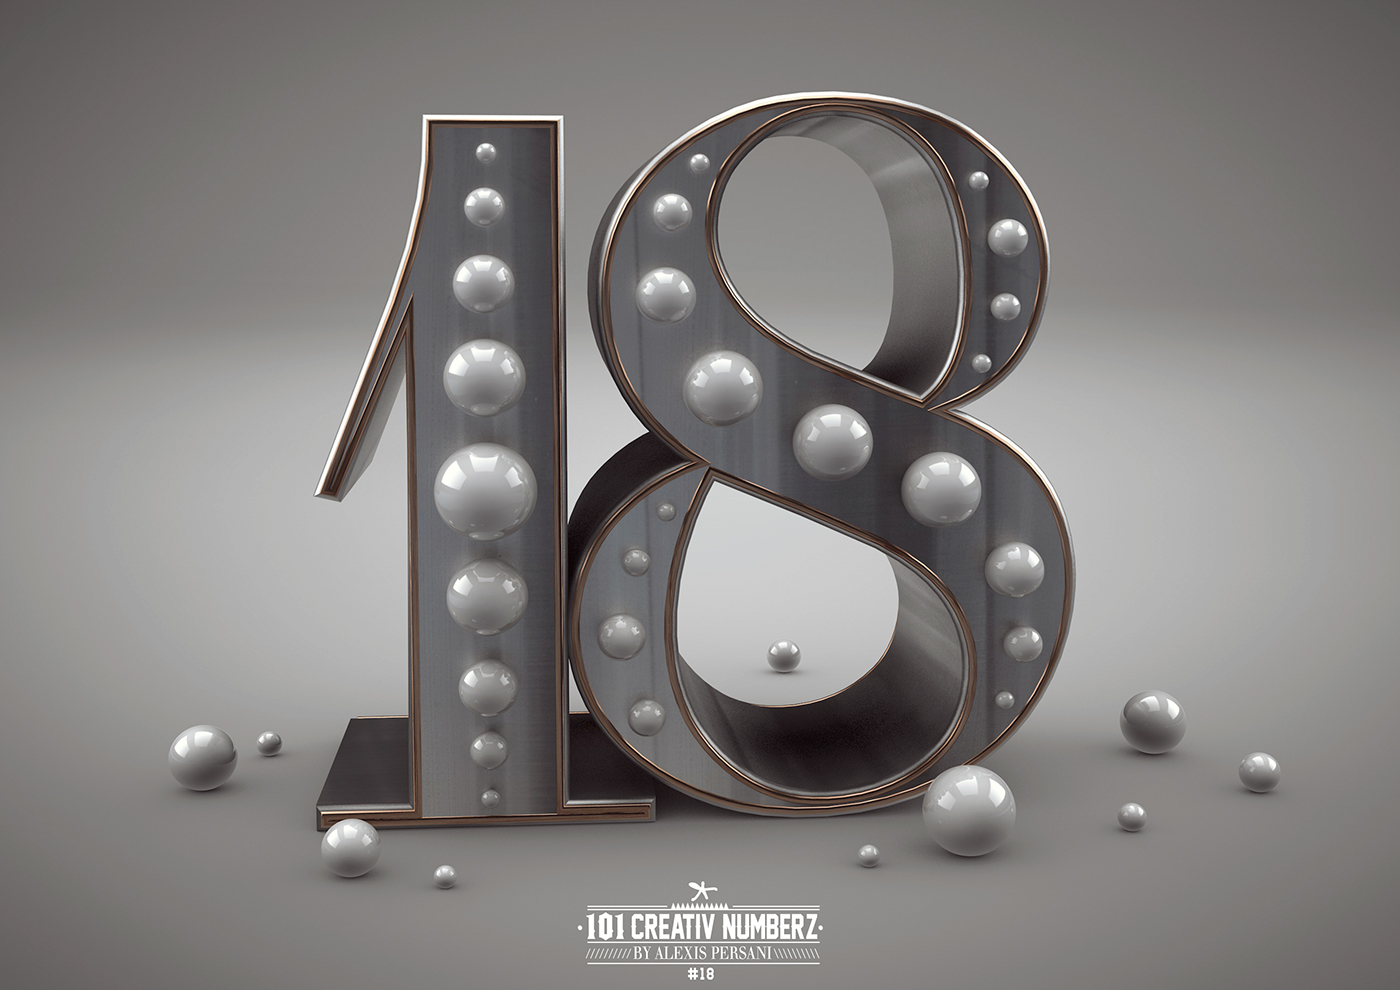 Outstanding 101 Creative Numbers Typography by Alexis Persani 16